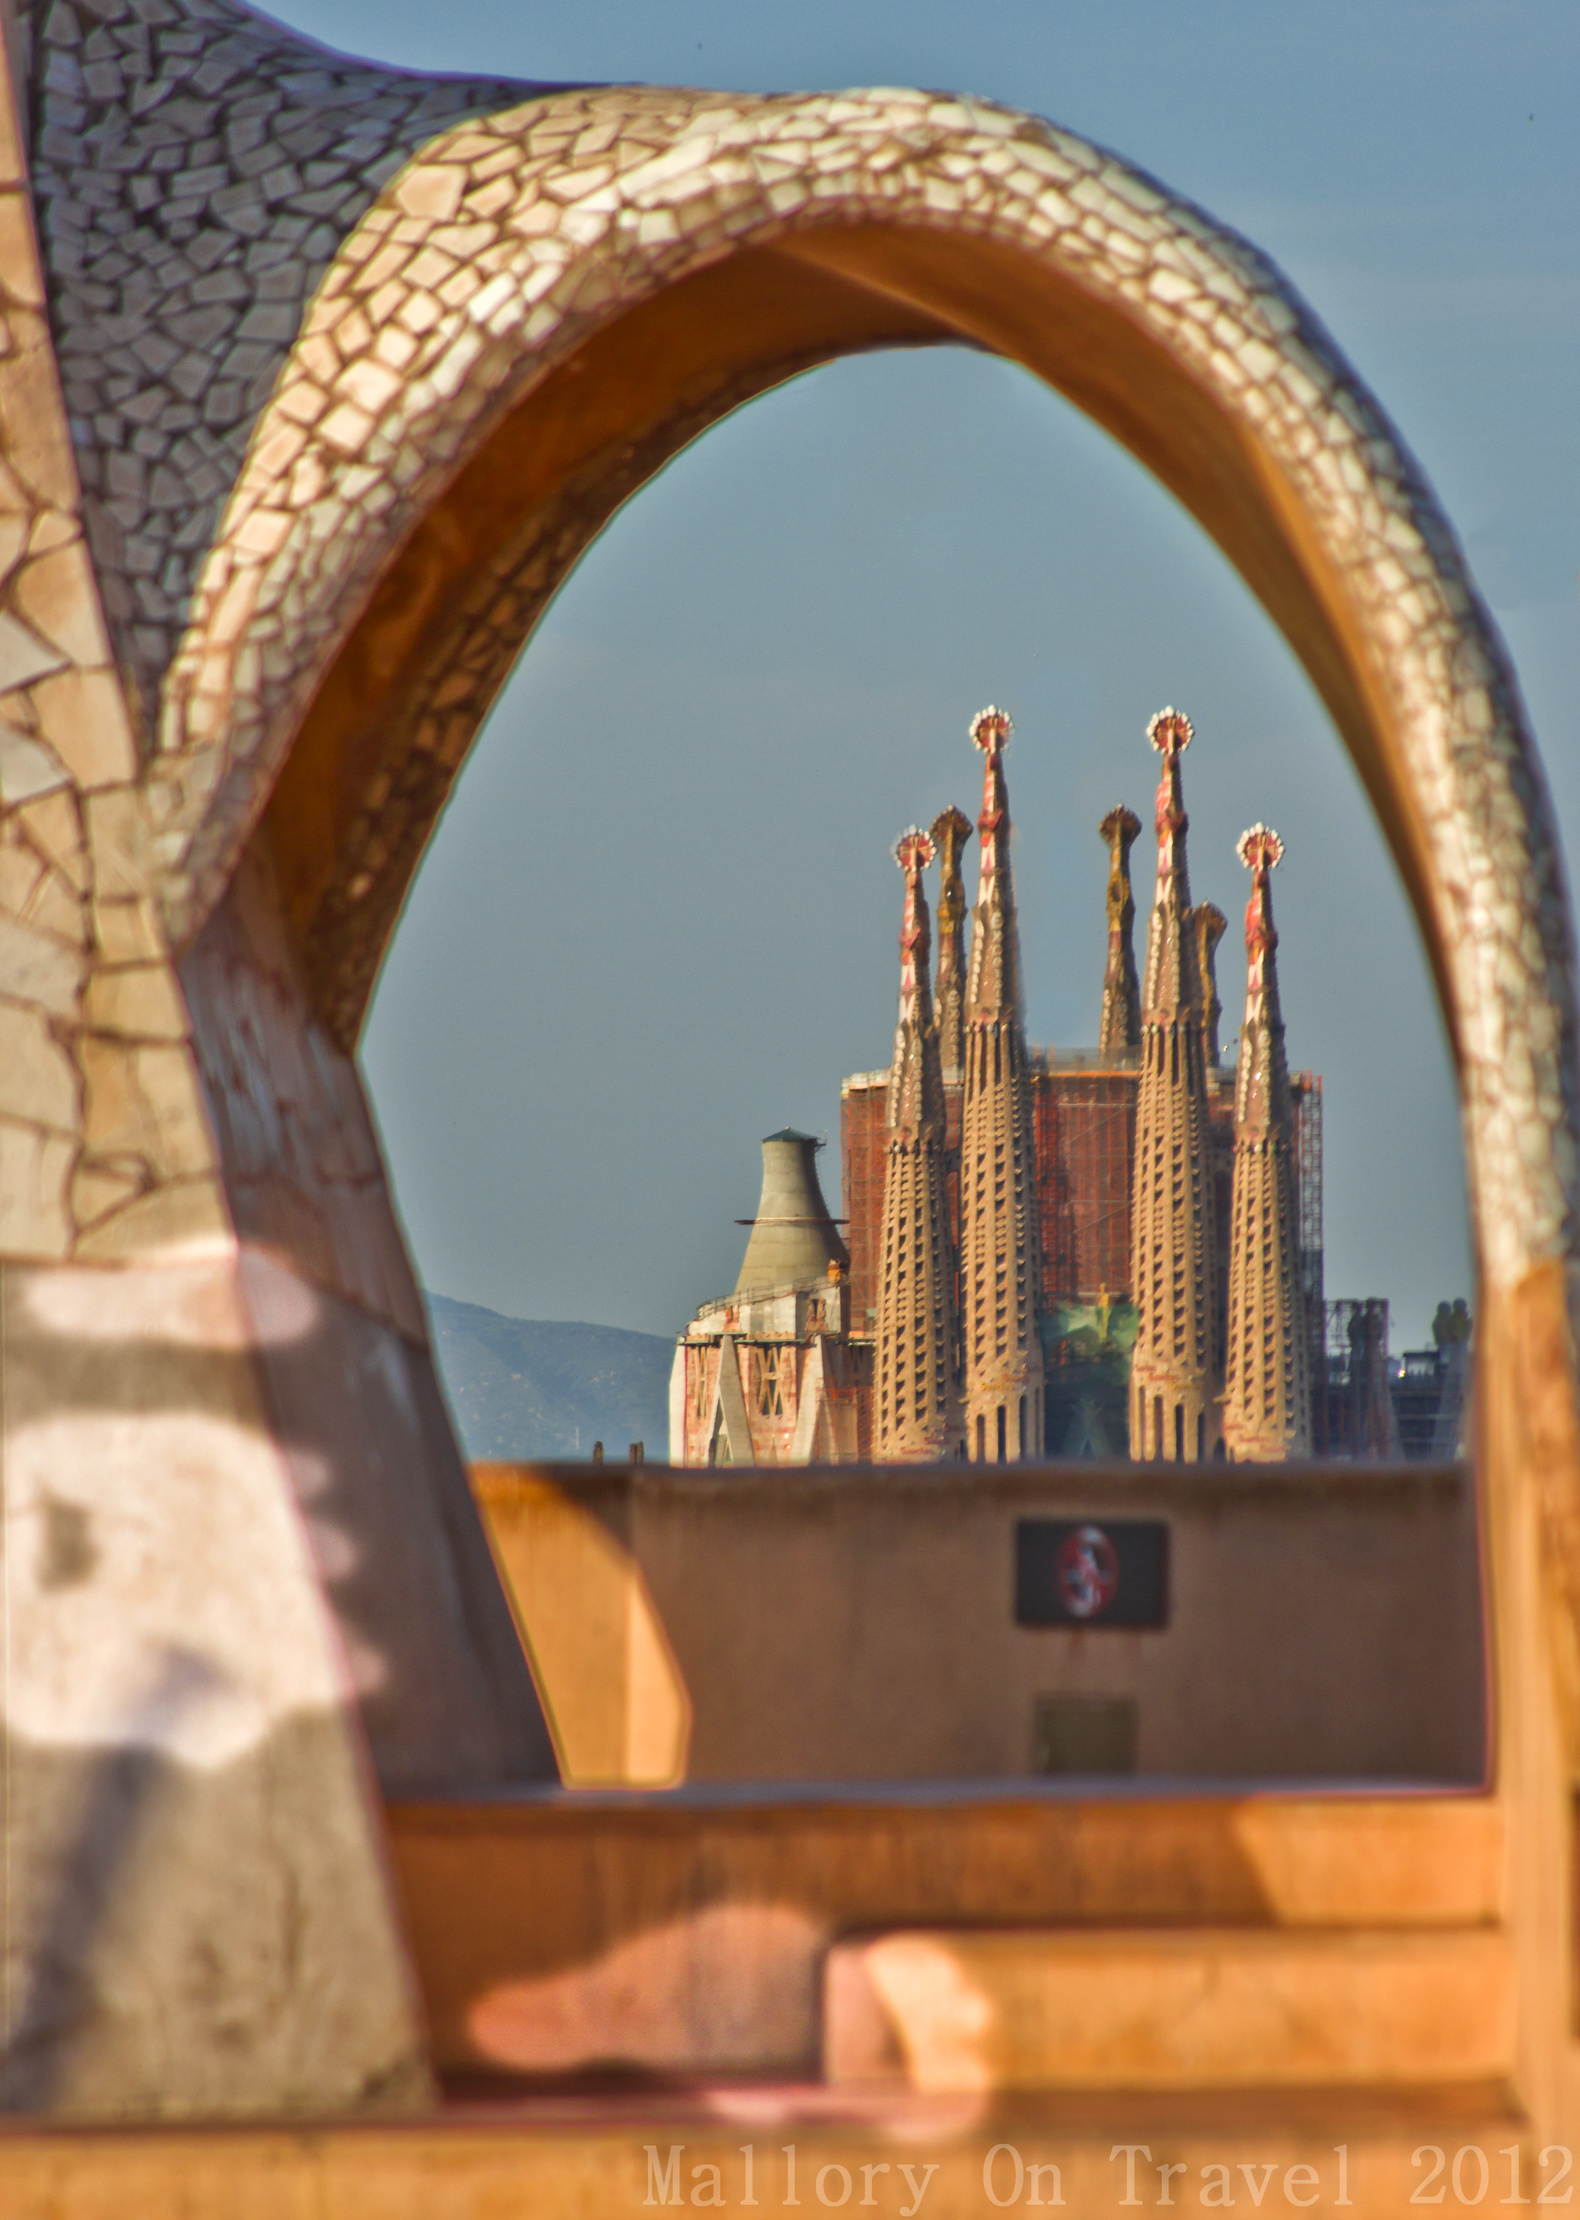 Places to visit in Spain; The view of the Sagrada Familia from the roof of Gaudi's La Pedera in Barcelona, Spain on Mallory on Travel adventure photography